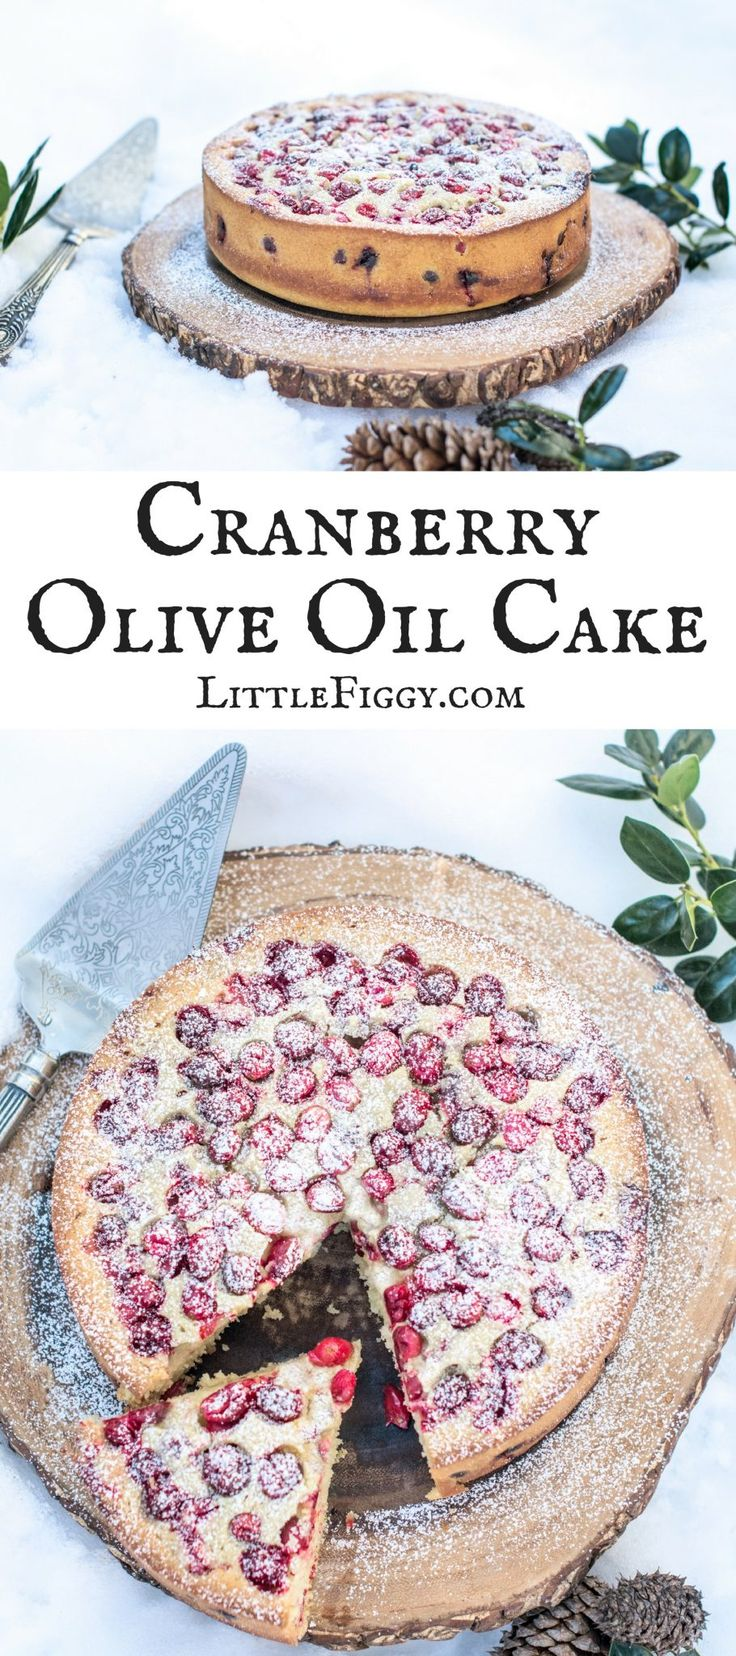 Cranberry Olive Oil Cake with a hint of orange, perfect for the holidays! Happily baked using @Silpat! Get the recipe at Little Figgy Food. #Silpat #ad via @LittleFiggyFood